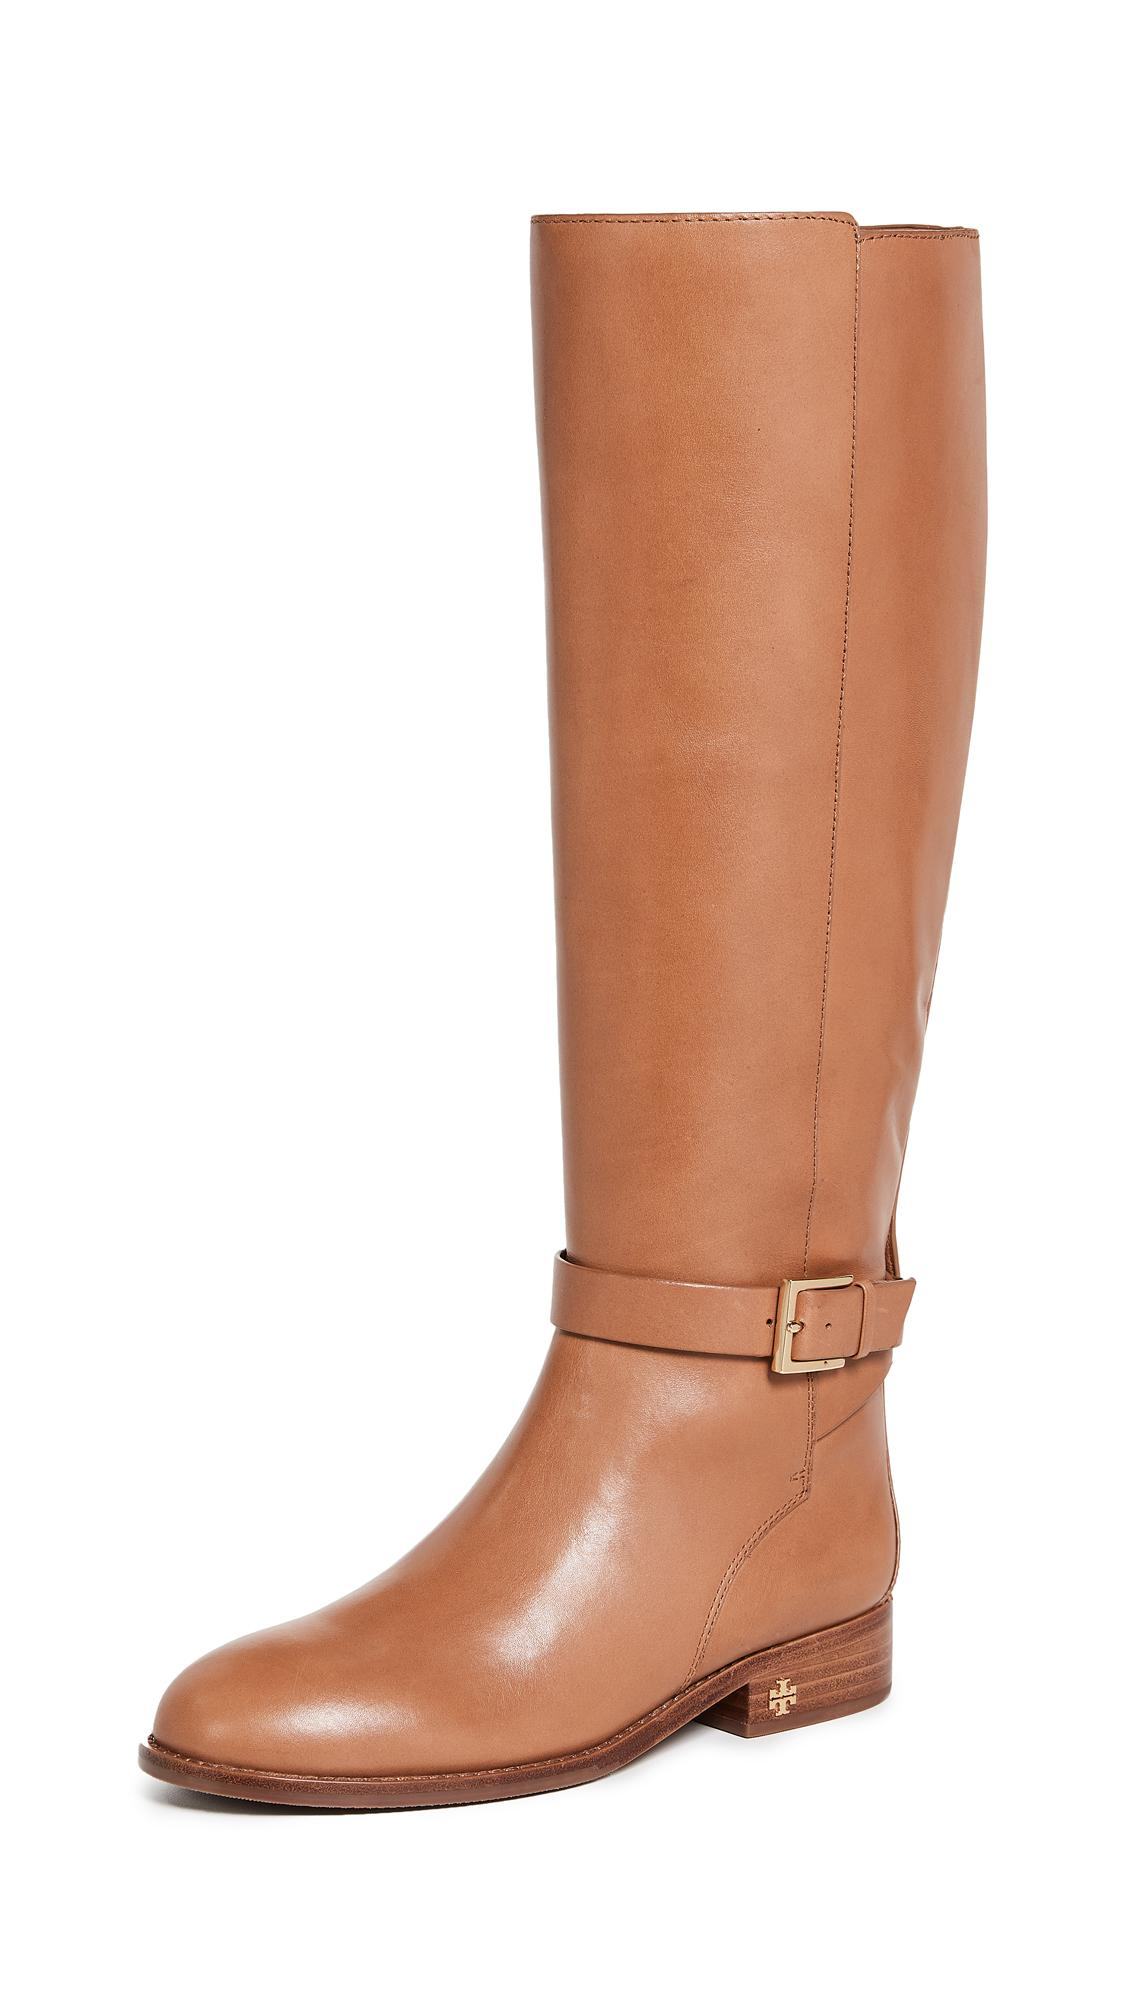 19c55135d Tory Burch Brooke Tall Boots In Tan